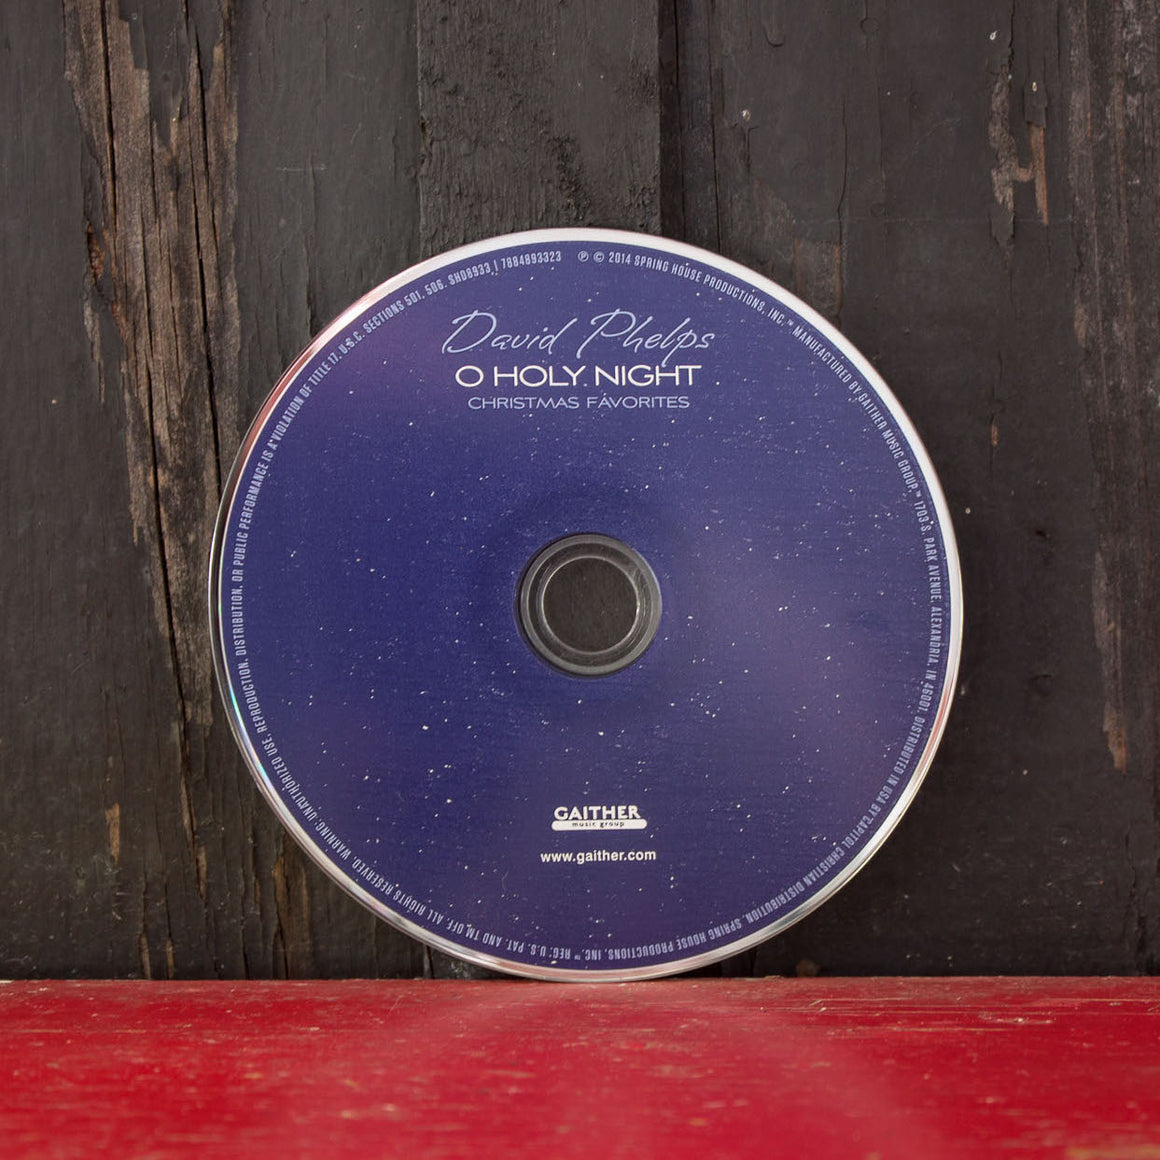 O Holy Night Cracker Barrel CD